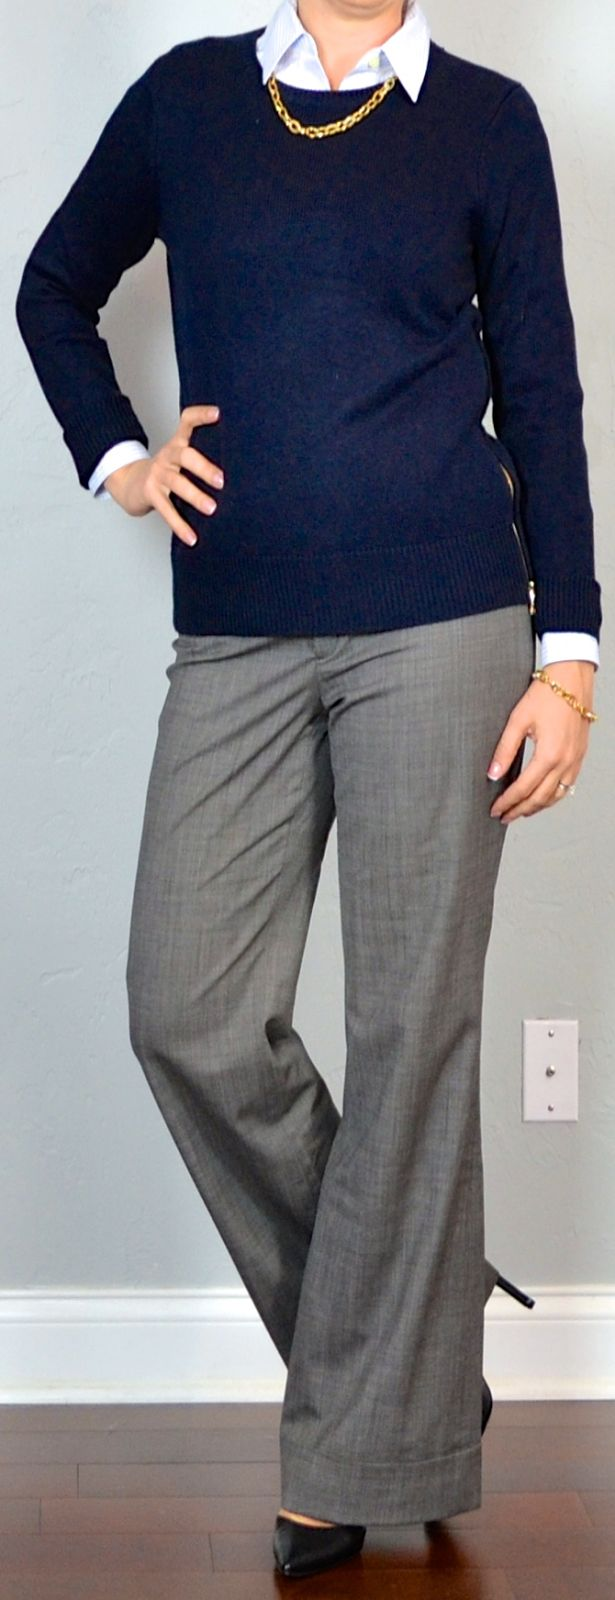 outfits for navy blue pants | outfit post: navy zipper sweater, blue pinstripe button down, grey ...